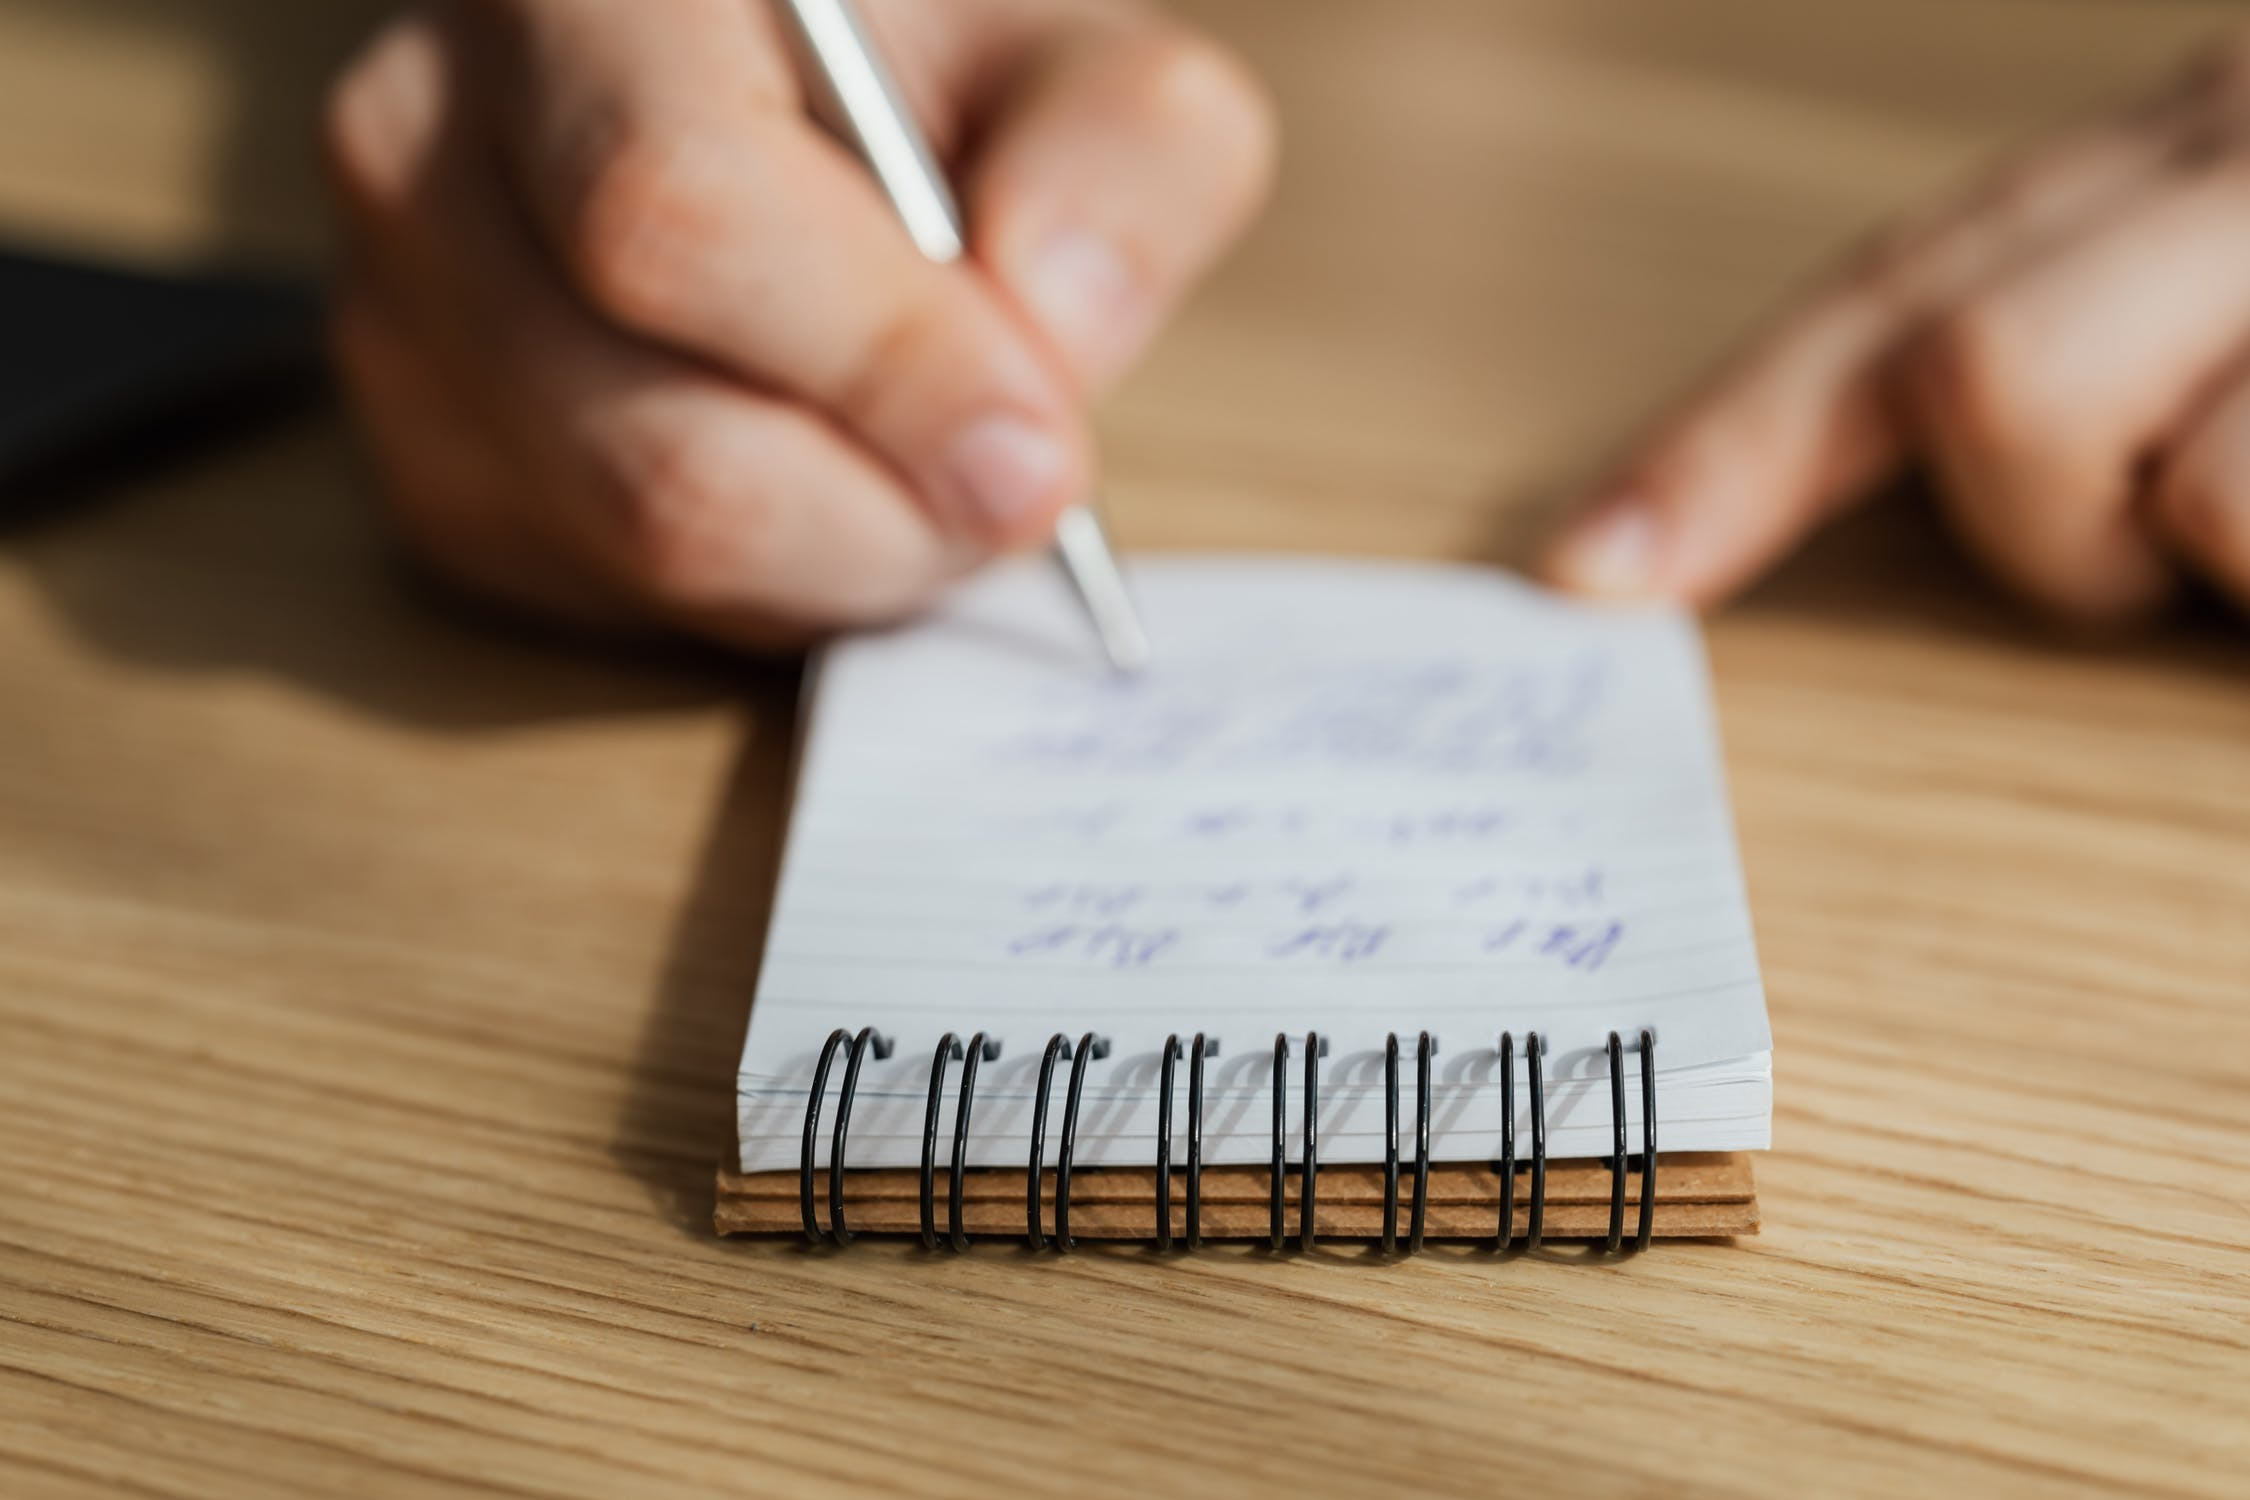 A person writing in a notepad. Photo by pexels user Karolina Grabowski. Used courtesy of pexels.com.